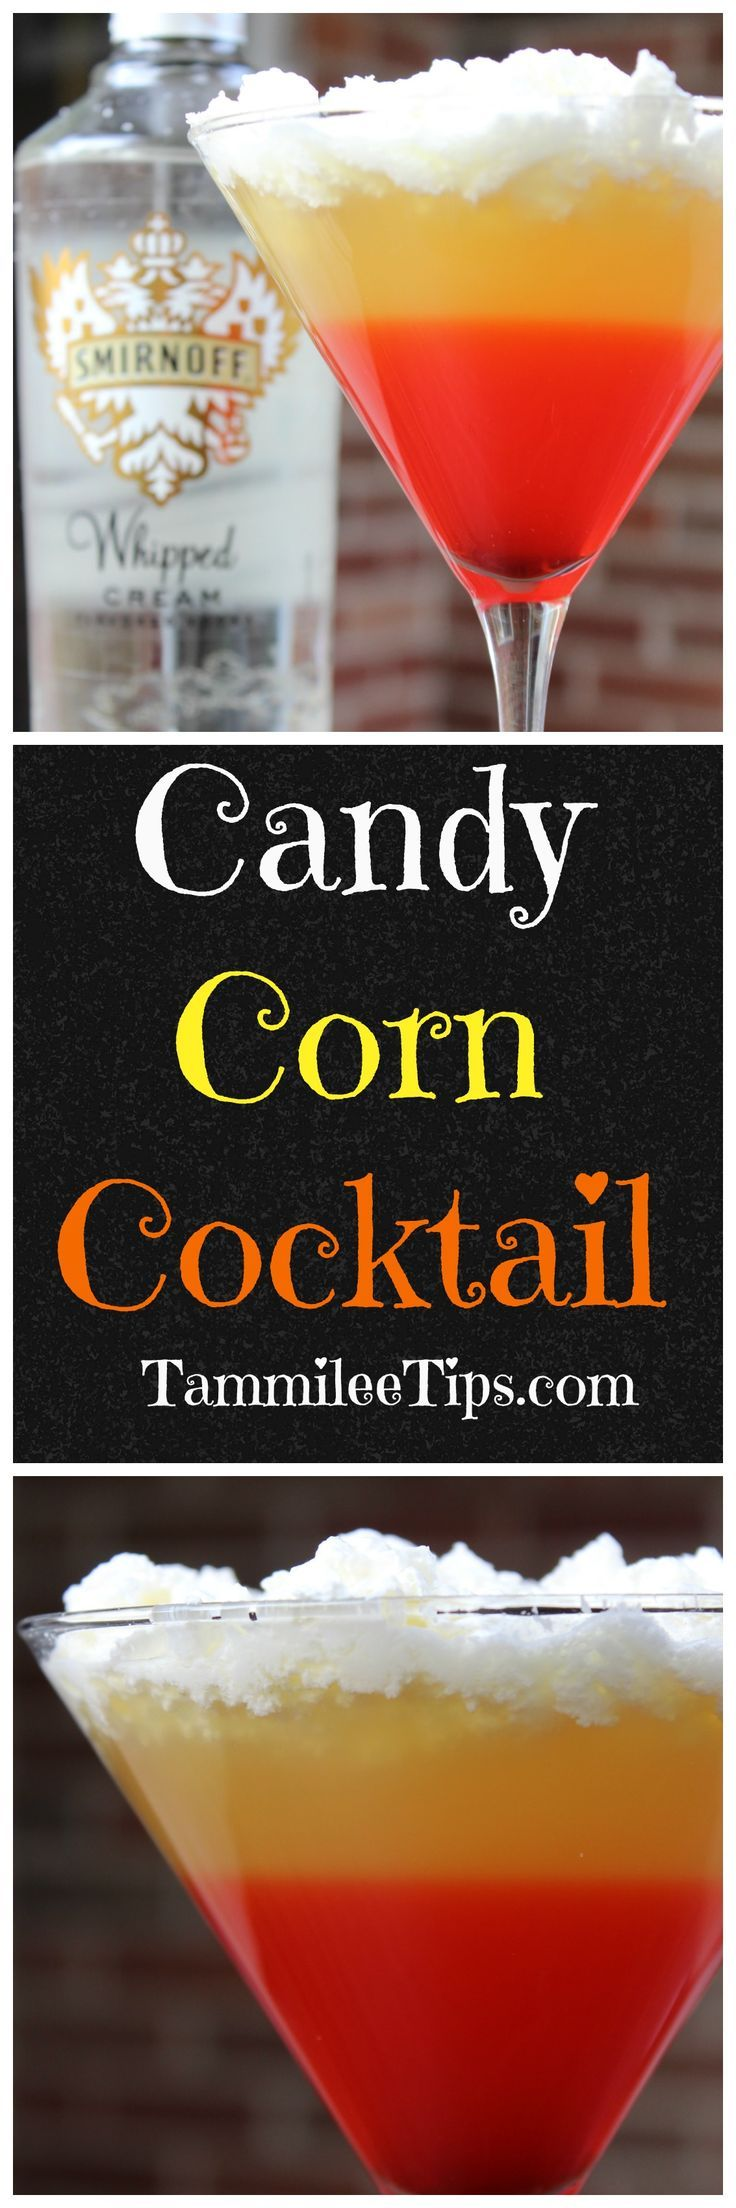 candy corn cocktail recipe perfect for halloween parties this easy cocktail recipe is sure to - Easy Halloween Candy Recipes